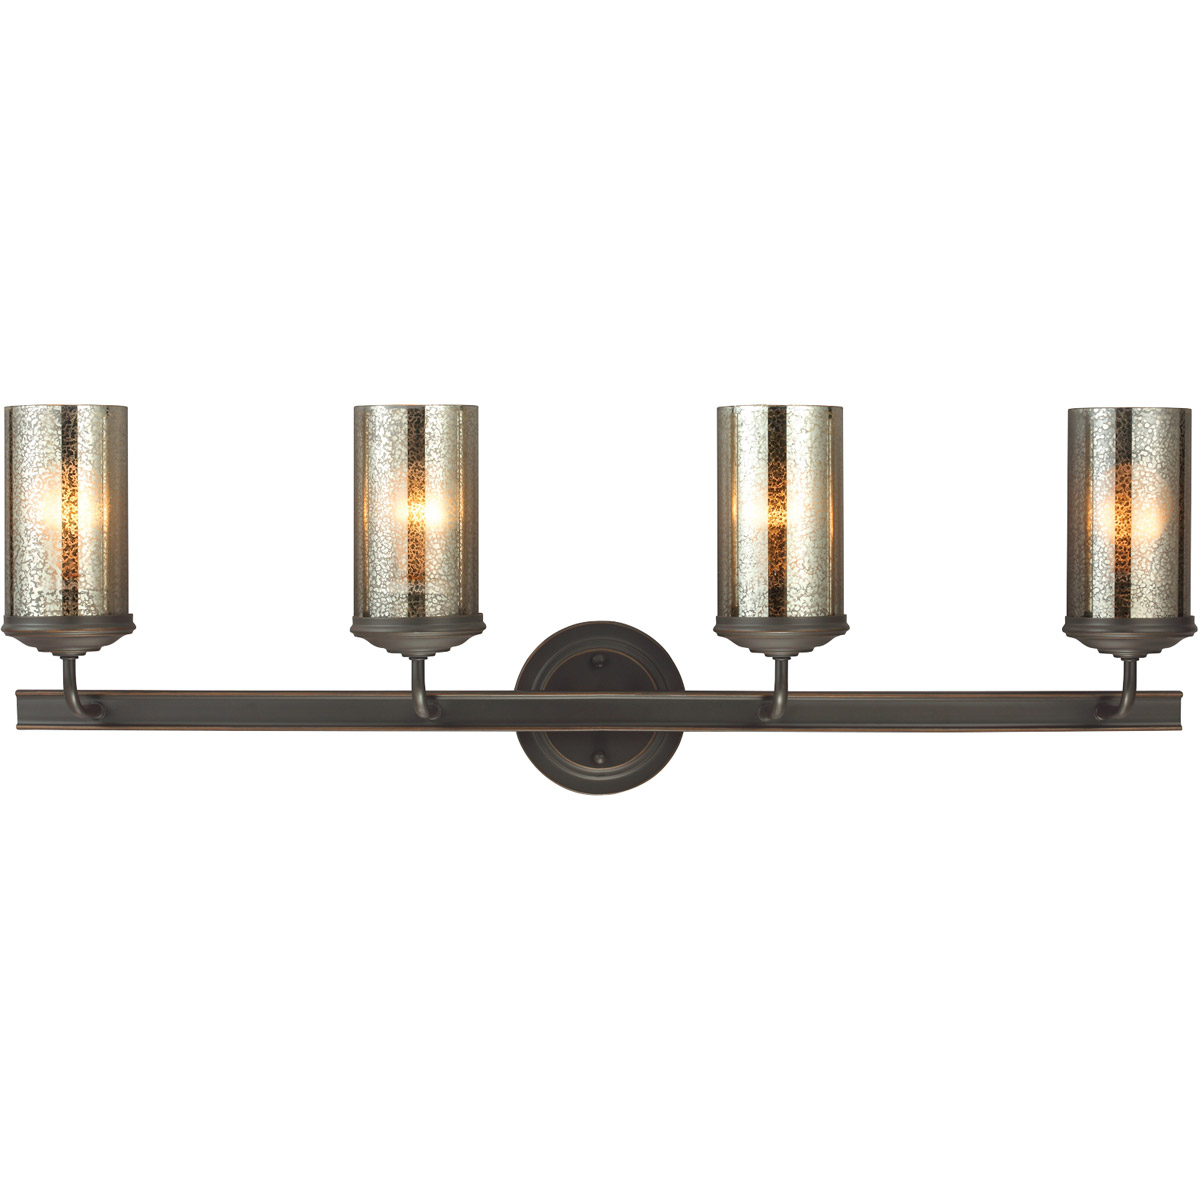 Sea Gull Sfera 4 Light Bath Vanity in Autumn Bronze 4410404BLE-715